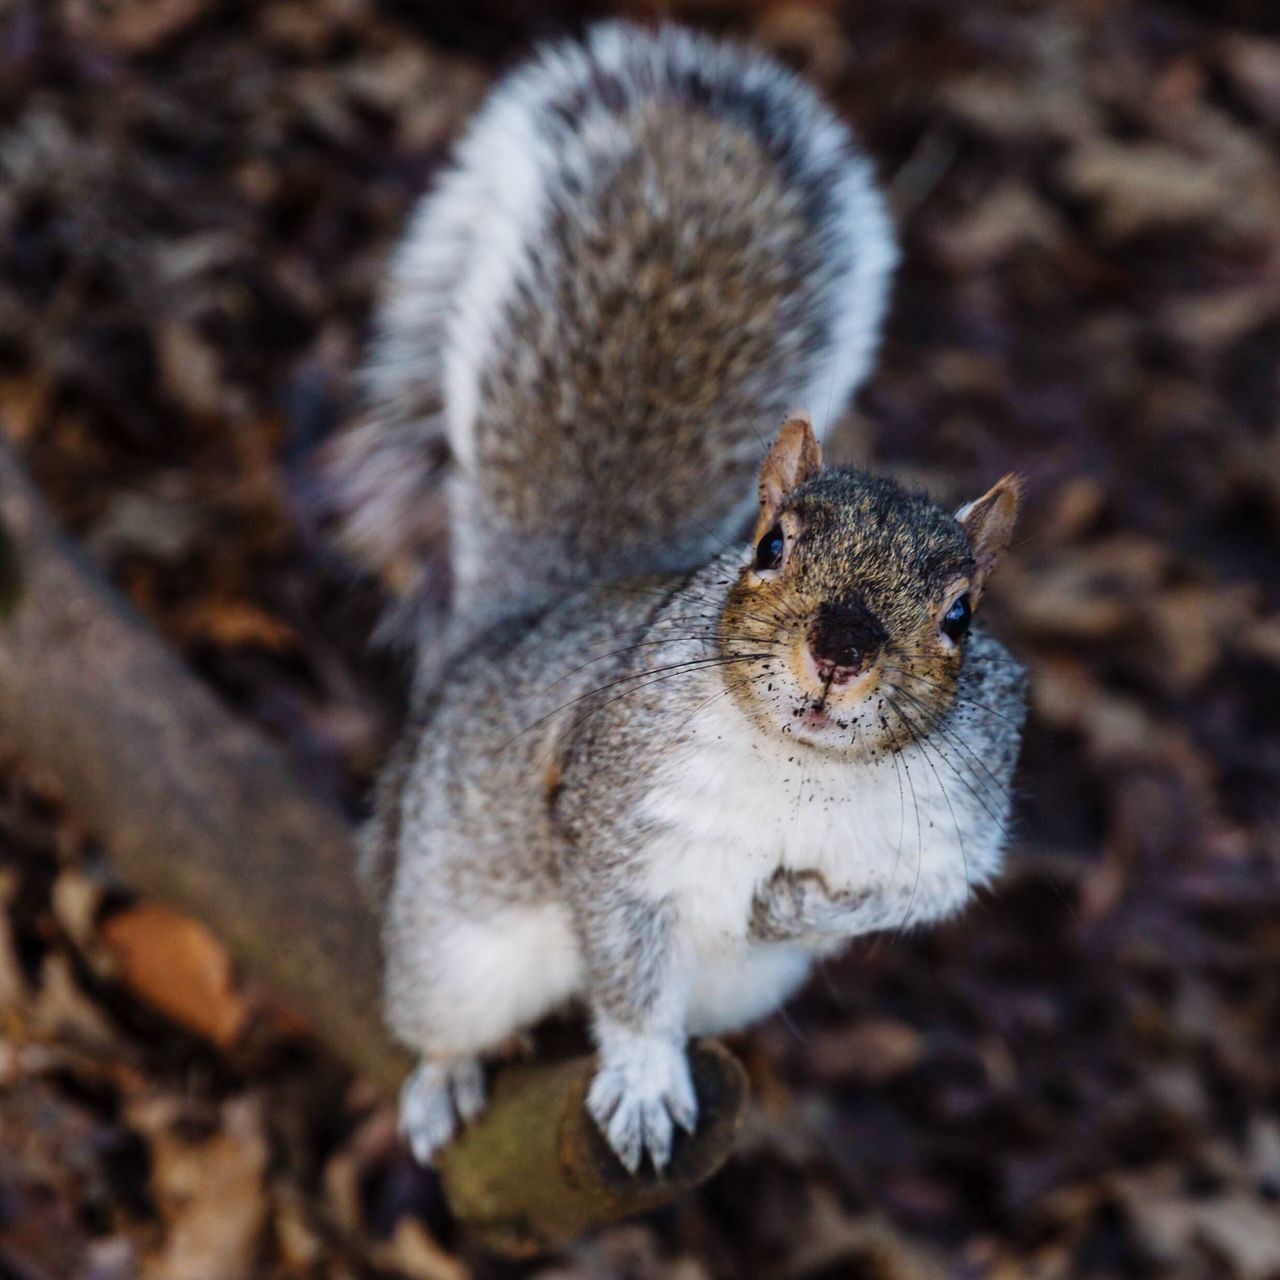 Portrait of a squirrel Animal Themes Animal Photography Tree Branch  Beauty In Nature Park Life Nature On Your Doorstep Animal Portrait Animal Posing Nature Photography Animals Squirrel Nature Animal Wildlife Park Sitting Looking At Camera Domestic Animals Pets Domestic Cat No People Nature Close-up Portrait Outdoors Day